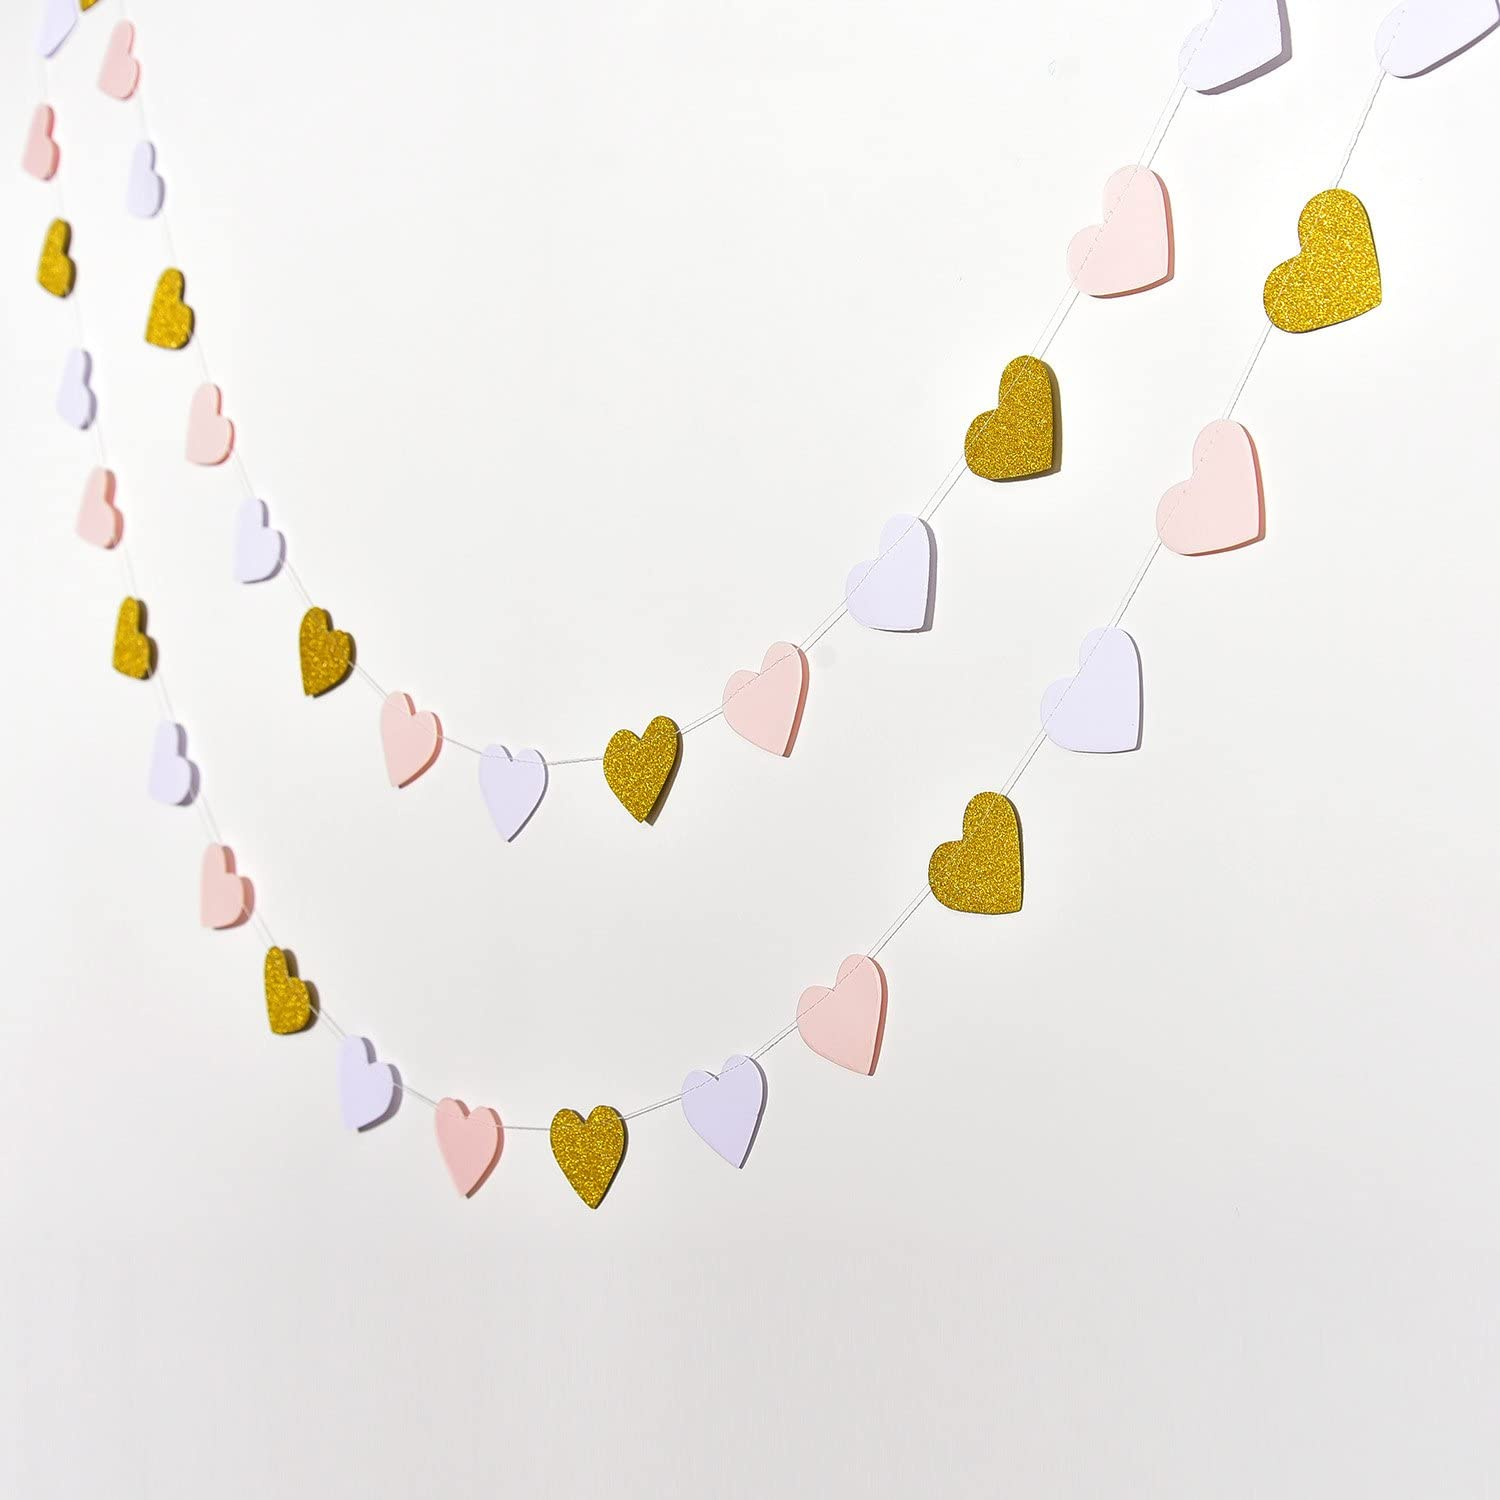 Glitter Gold 10 Feet Each White and Pink Hestya 2 Pack Paper Heart Garlands Heart Hanging Banner Bunting for Valentines Day Wedding Party Decoration